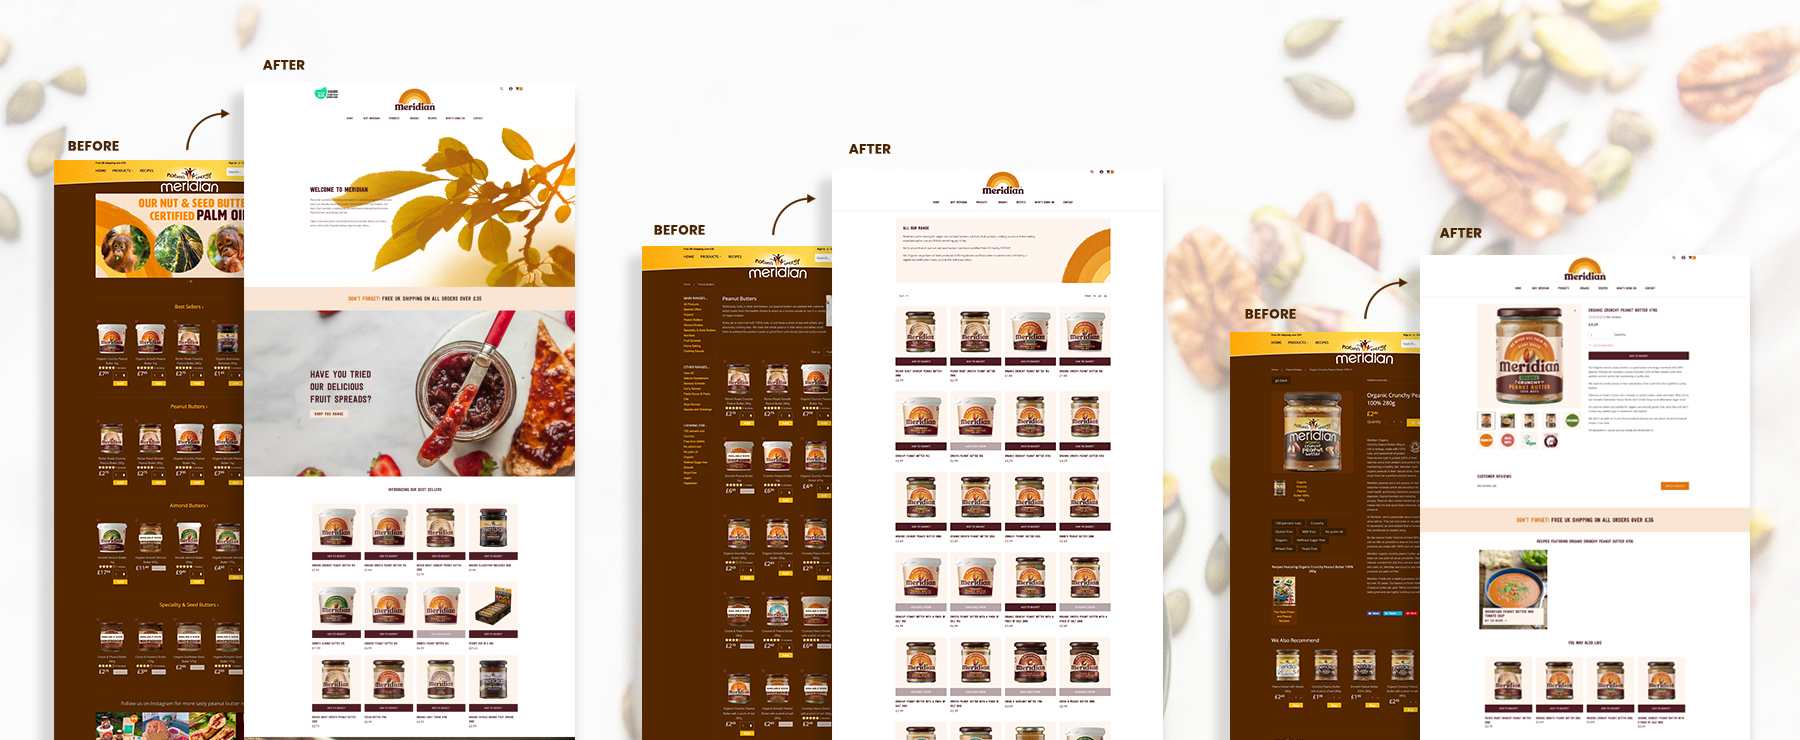 Before and afters of the Meridian website